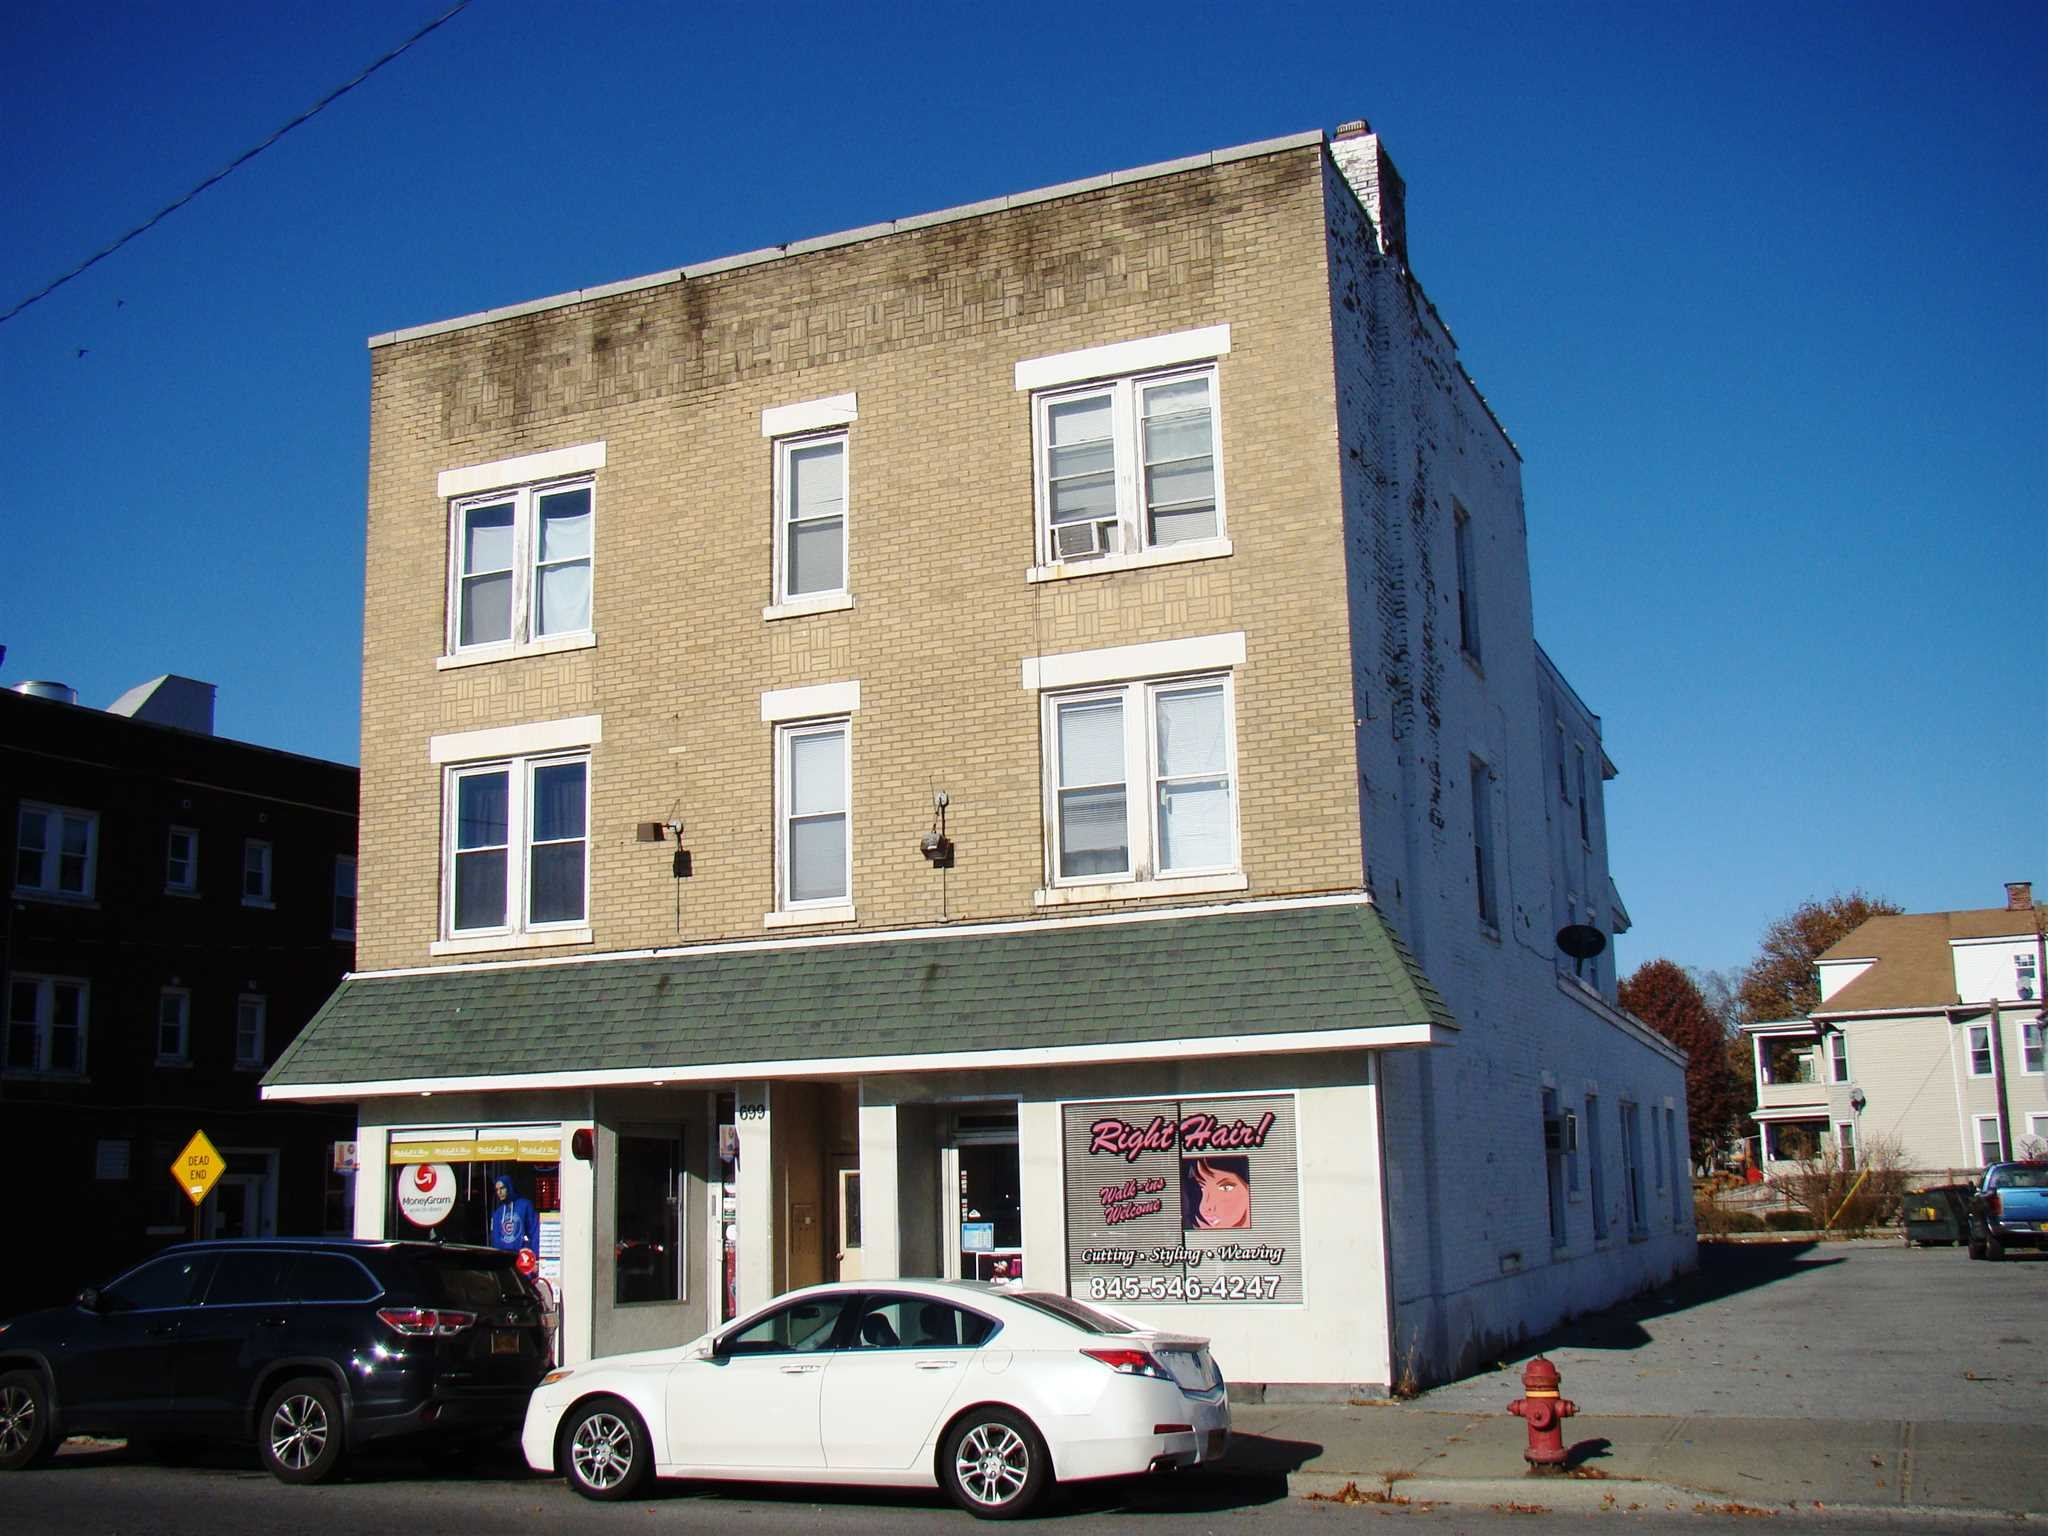 Single Family Home for Sale at 699 MAIN Street 699 MAIN Street Poughkeepsie, New York 12601 United States